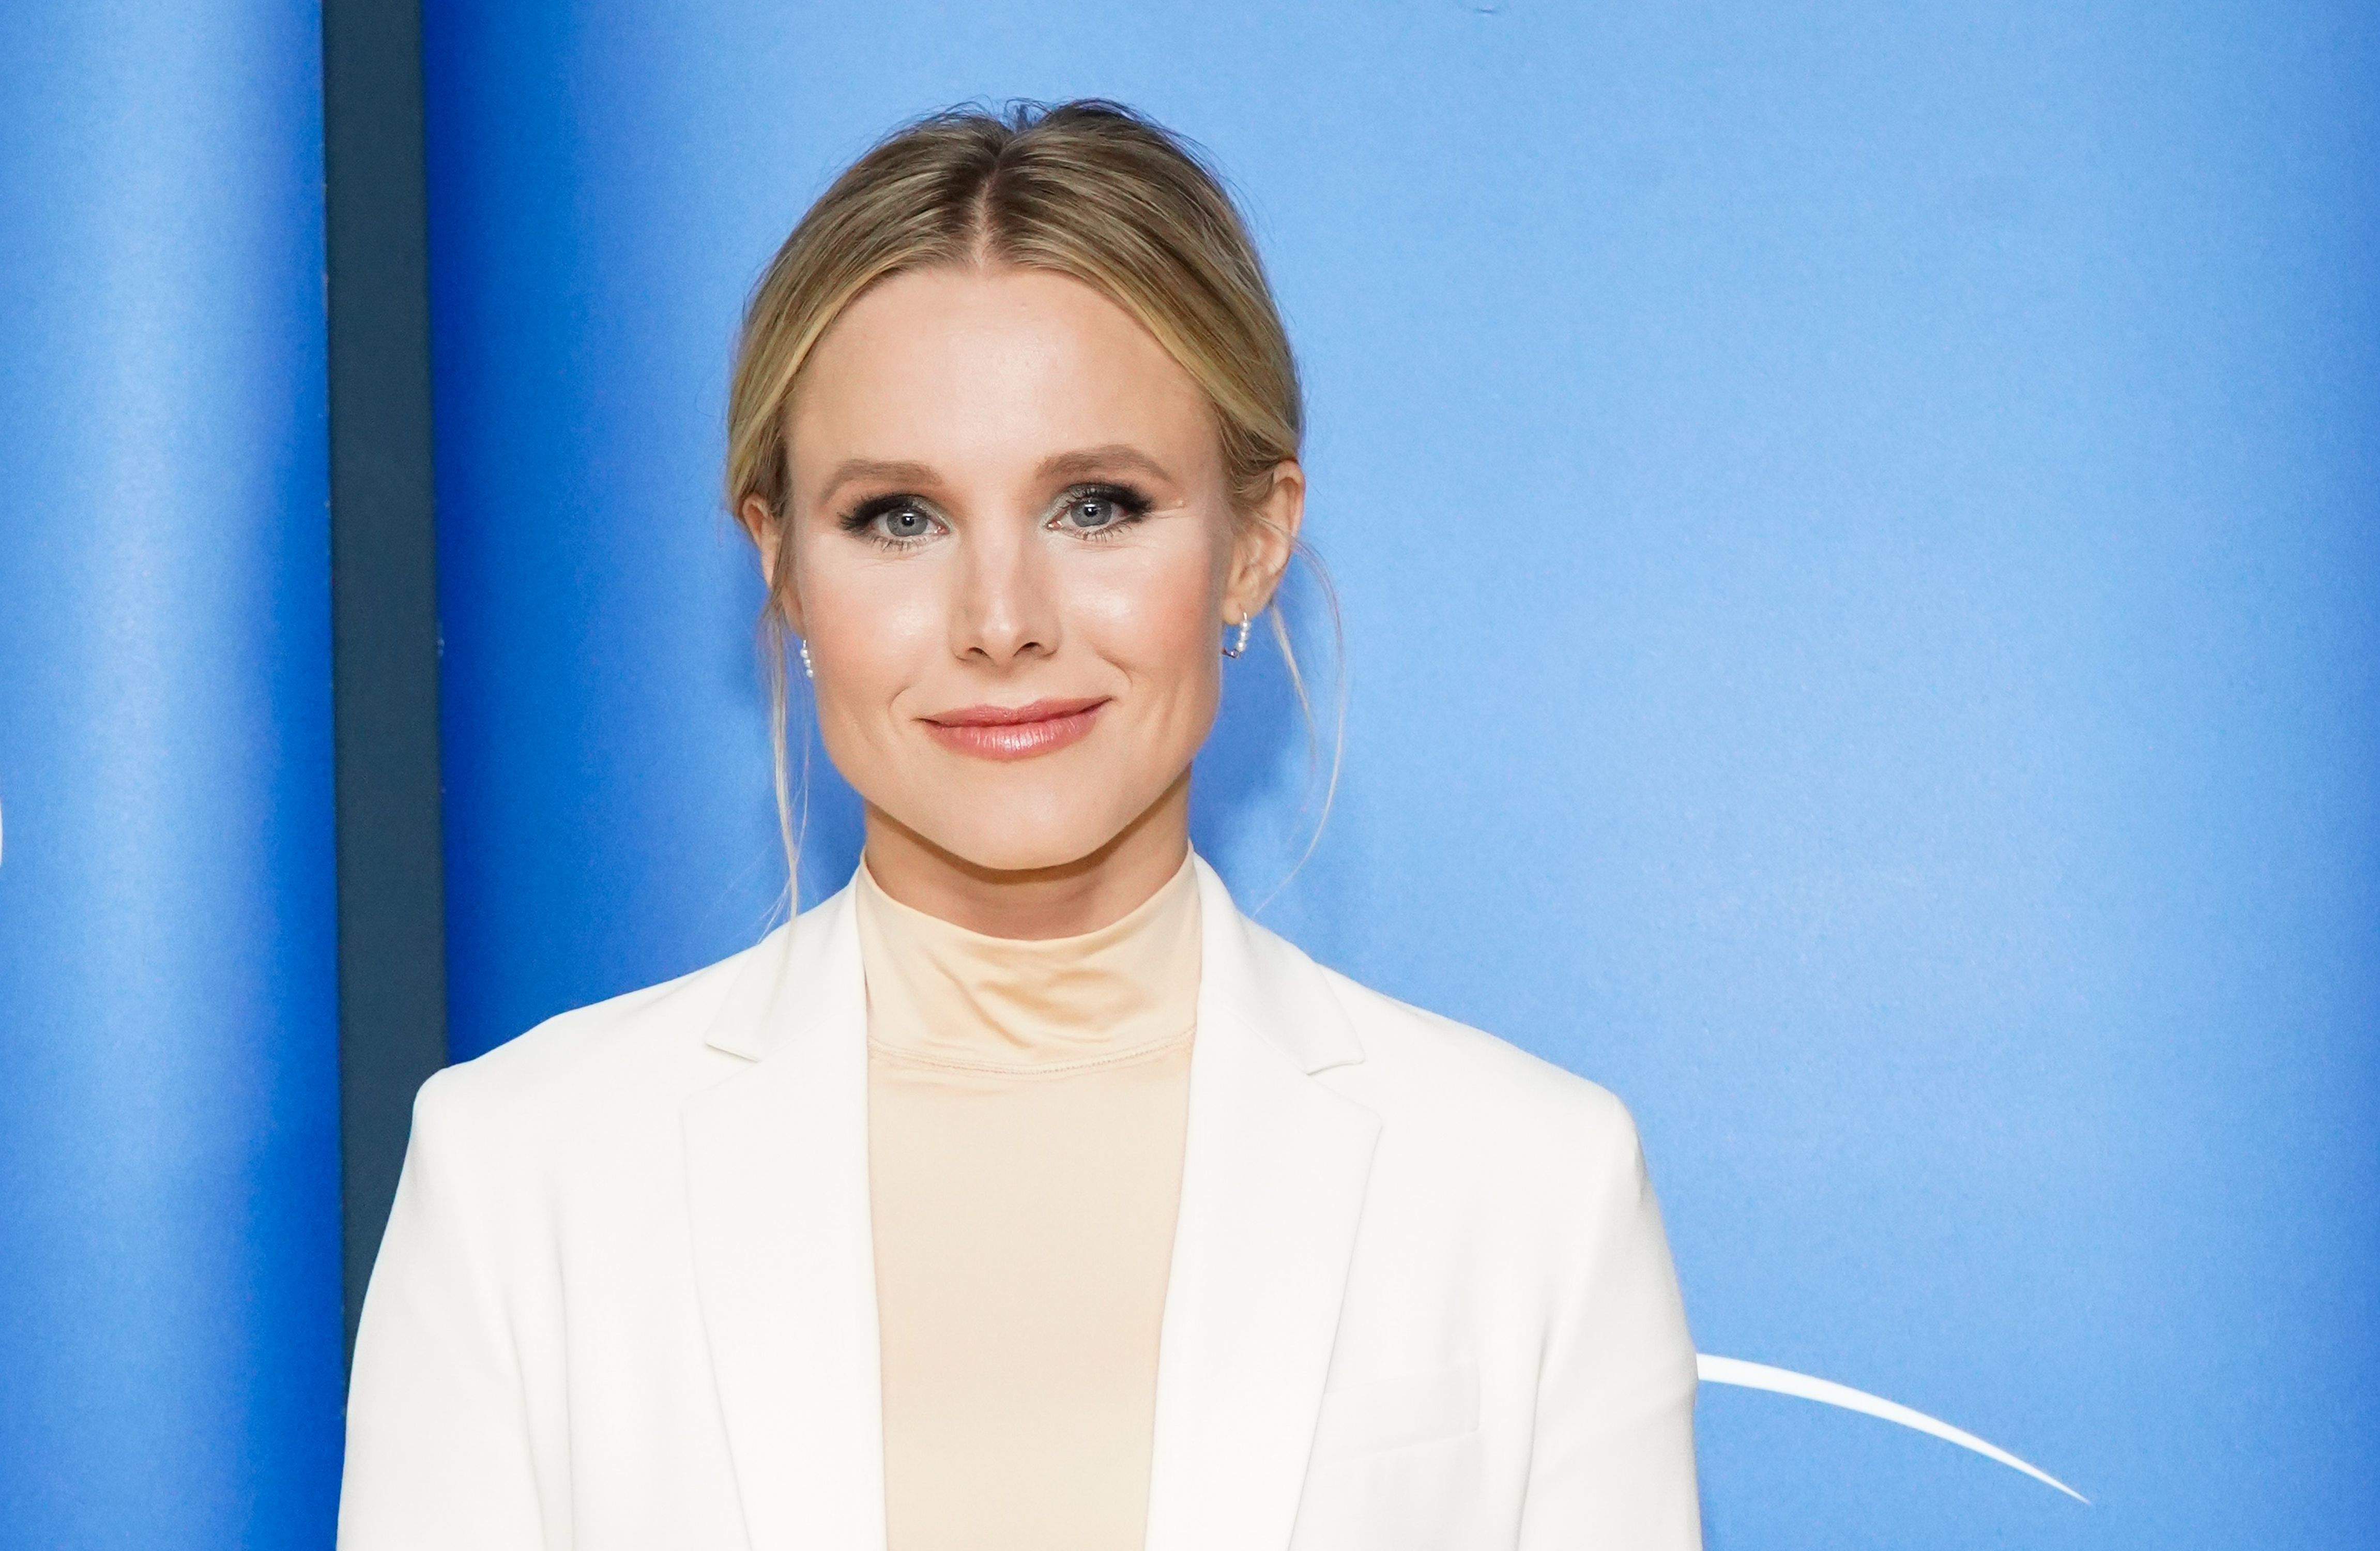 Kristen Bell S Skincare Diet And Fitness Routine At 39 Years Old